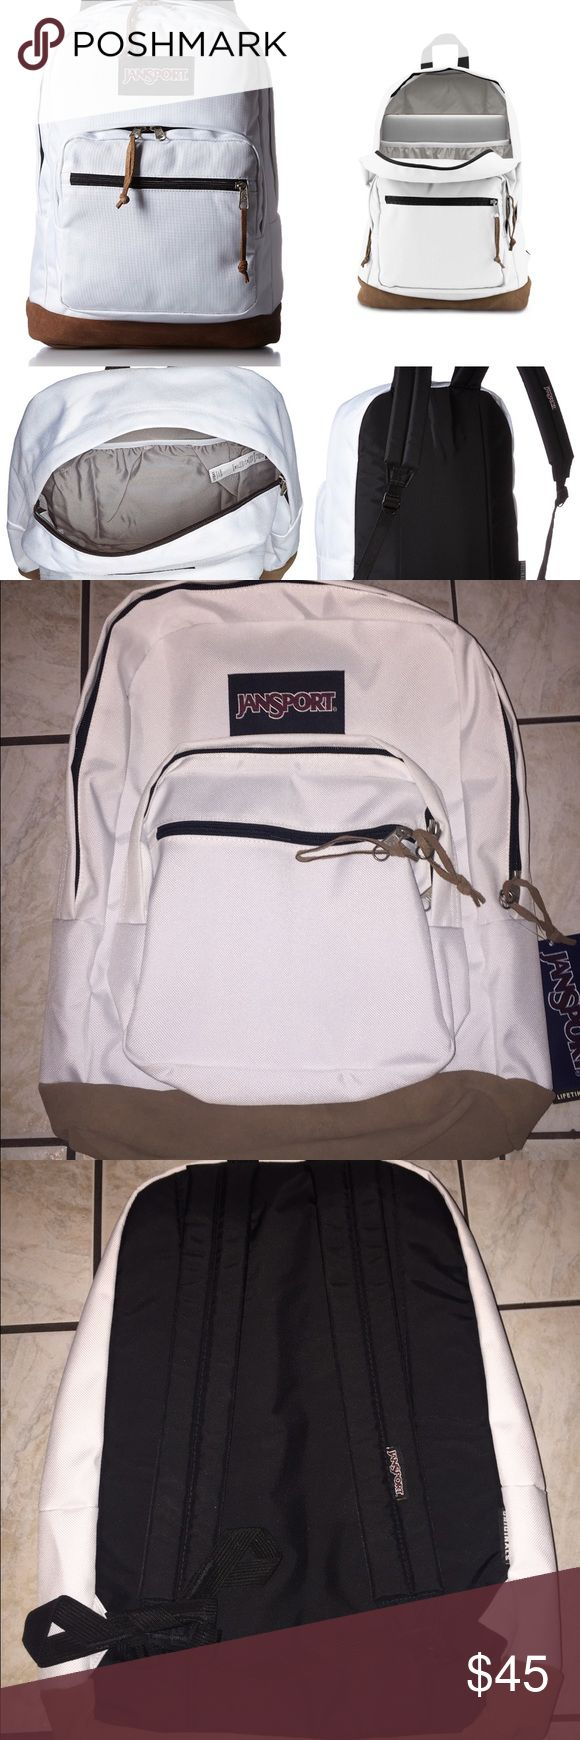 "NWT WHITE JANSPORT BACKPACK This is $60 on the JANSPORT website. NEW JANSPORT WHITE BACKPACK! This has a pocket for a 15"" laptop. NO DEFECTS. Leather bottom. Any questions ask below! Jansport Bags Backpacks"